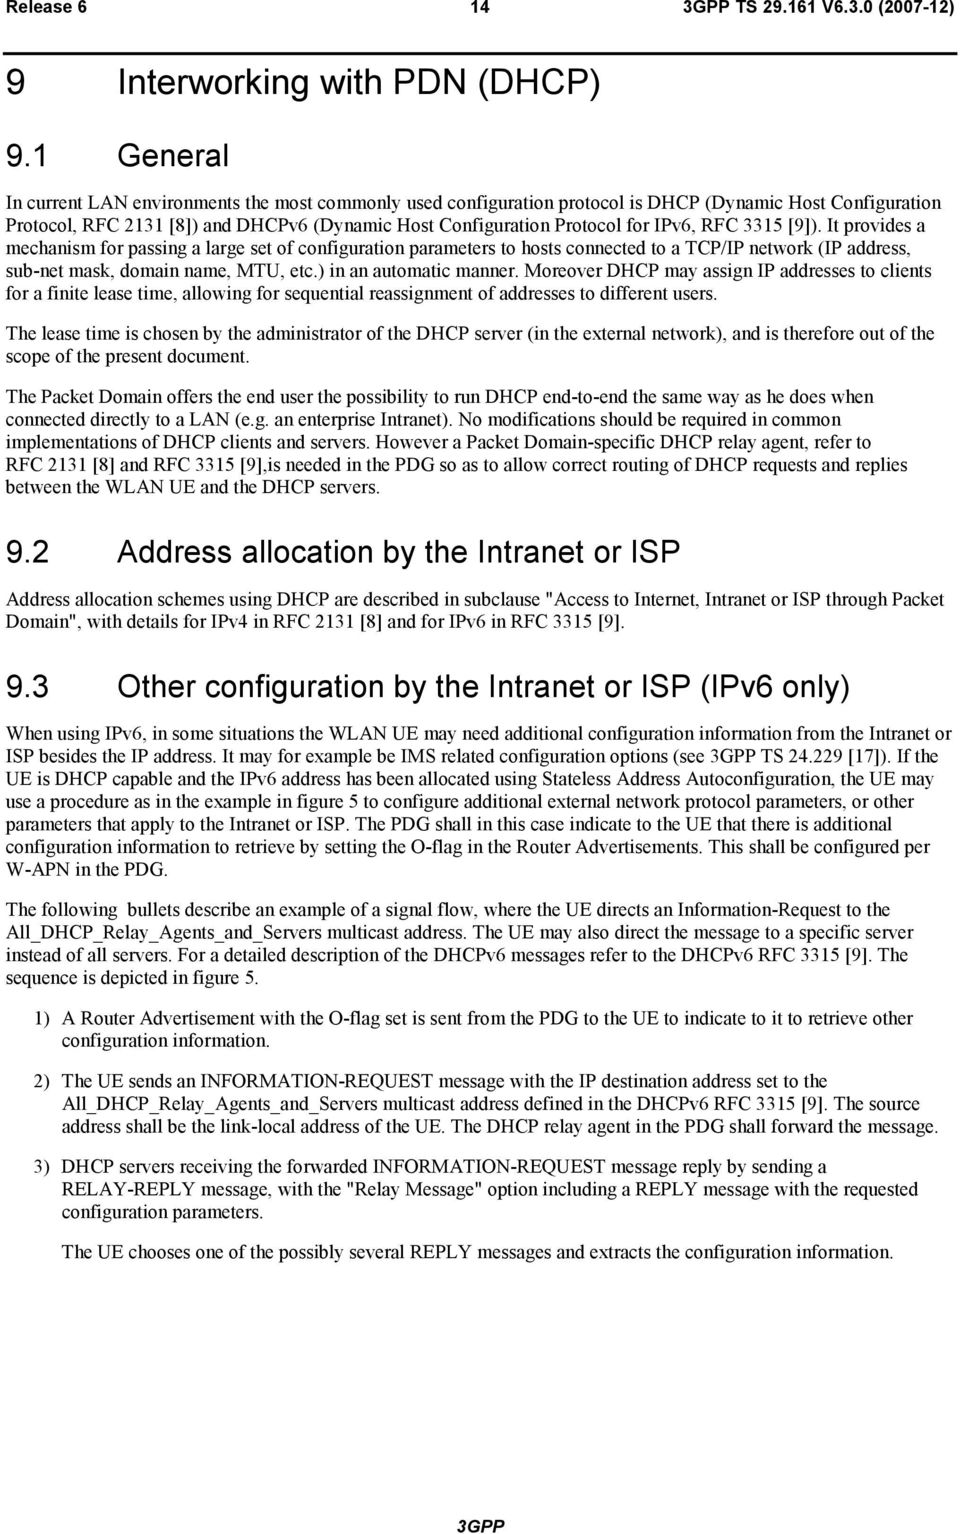 IPv6, RFC 3315 [9]). It provides a mechanism for passing a large set of configuration parameters to hosts connected to a TCP/IP network (IP address, sub-net mask, domain name, MTU, etc.